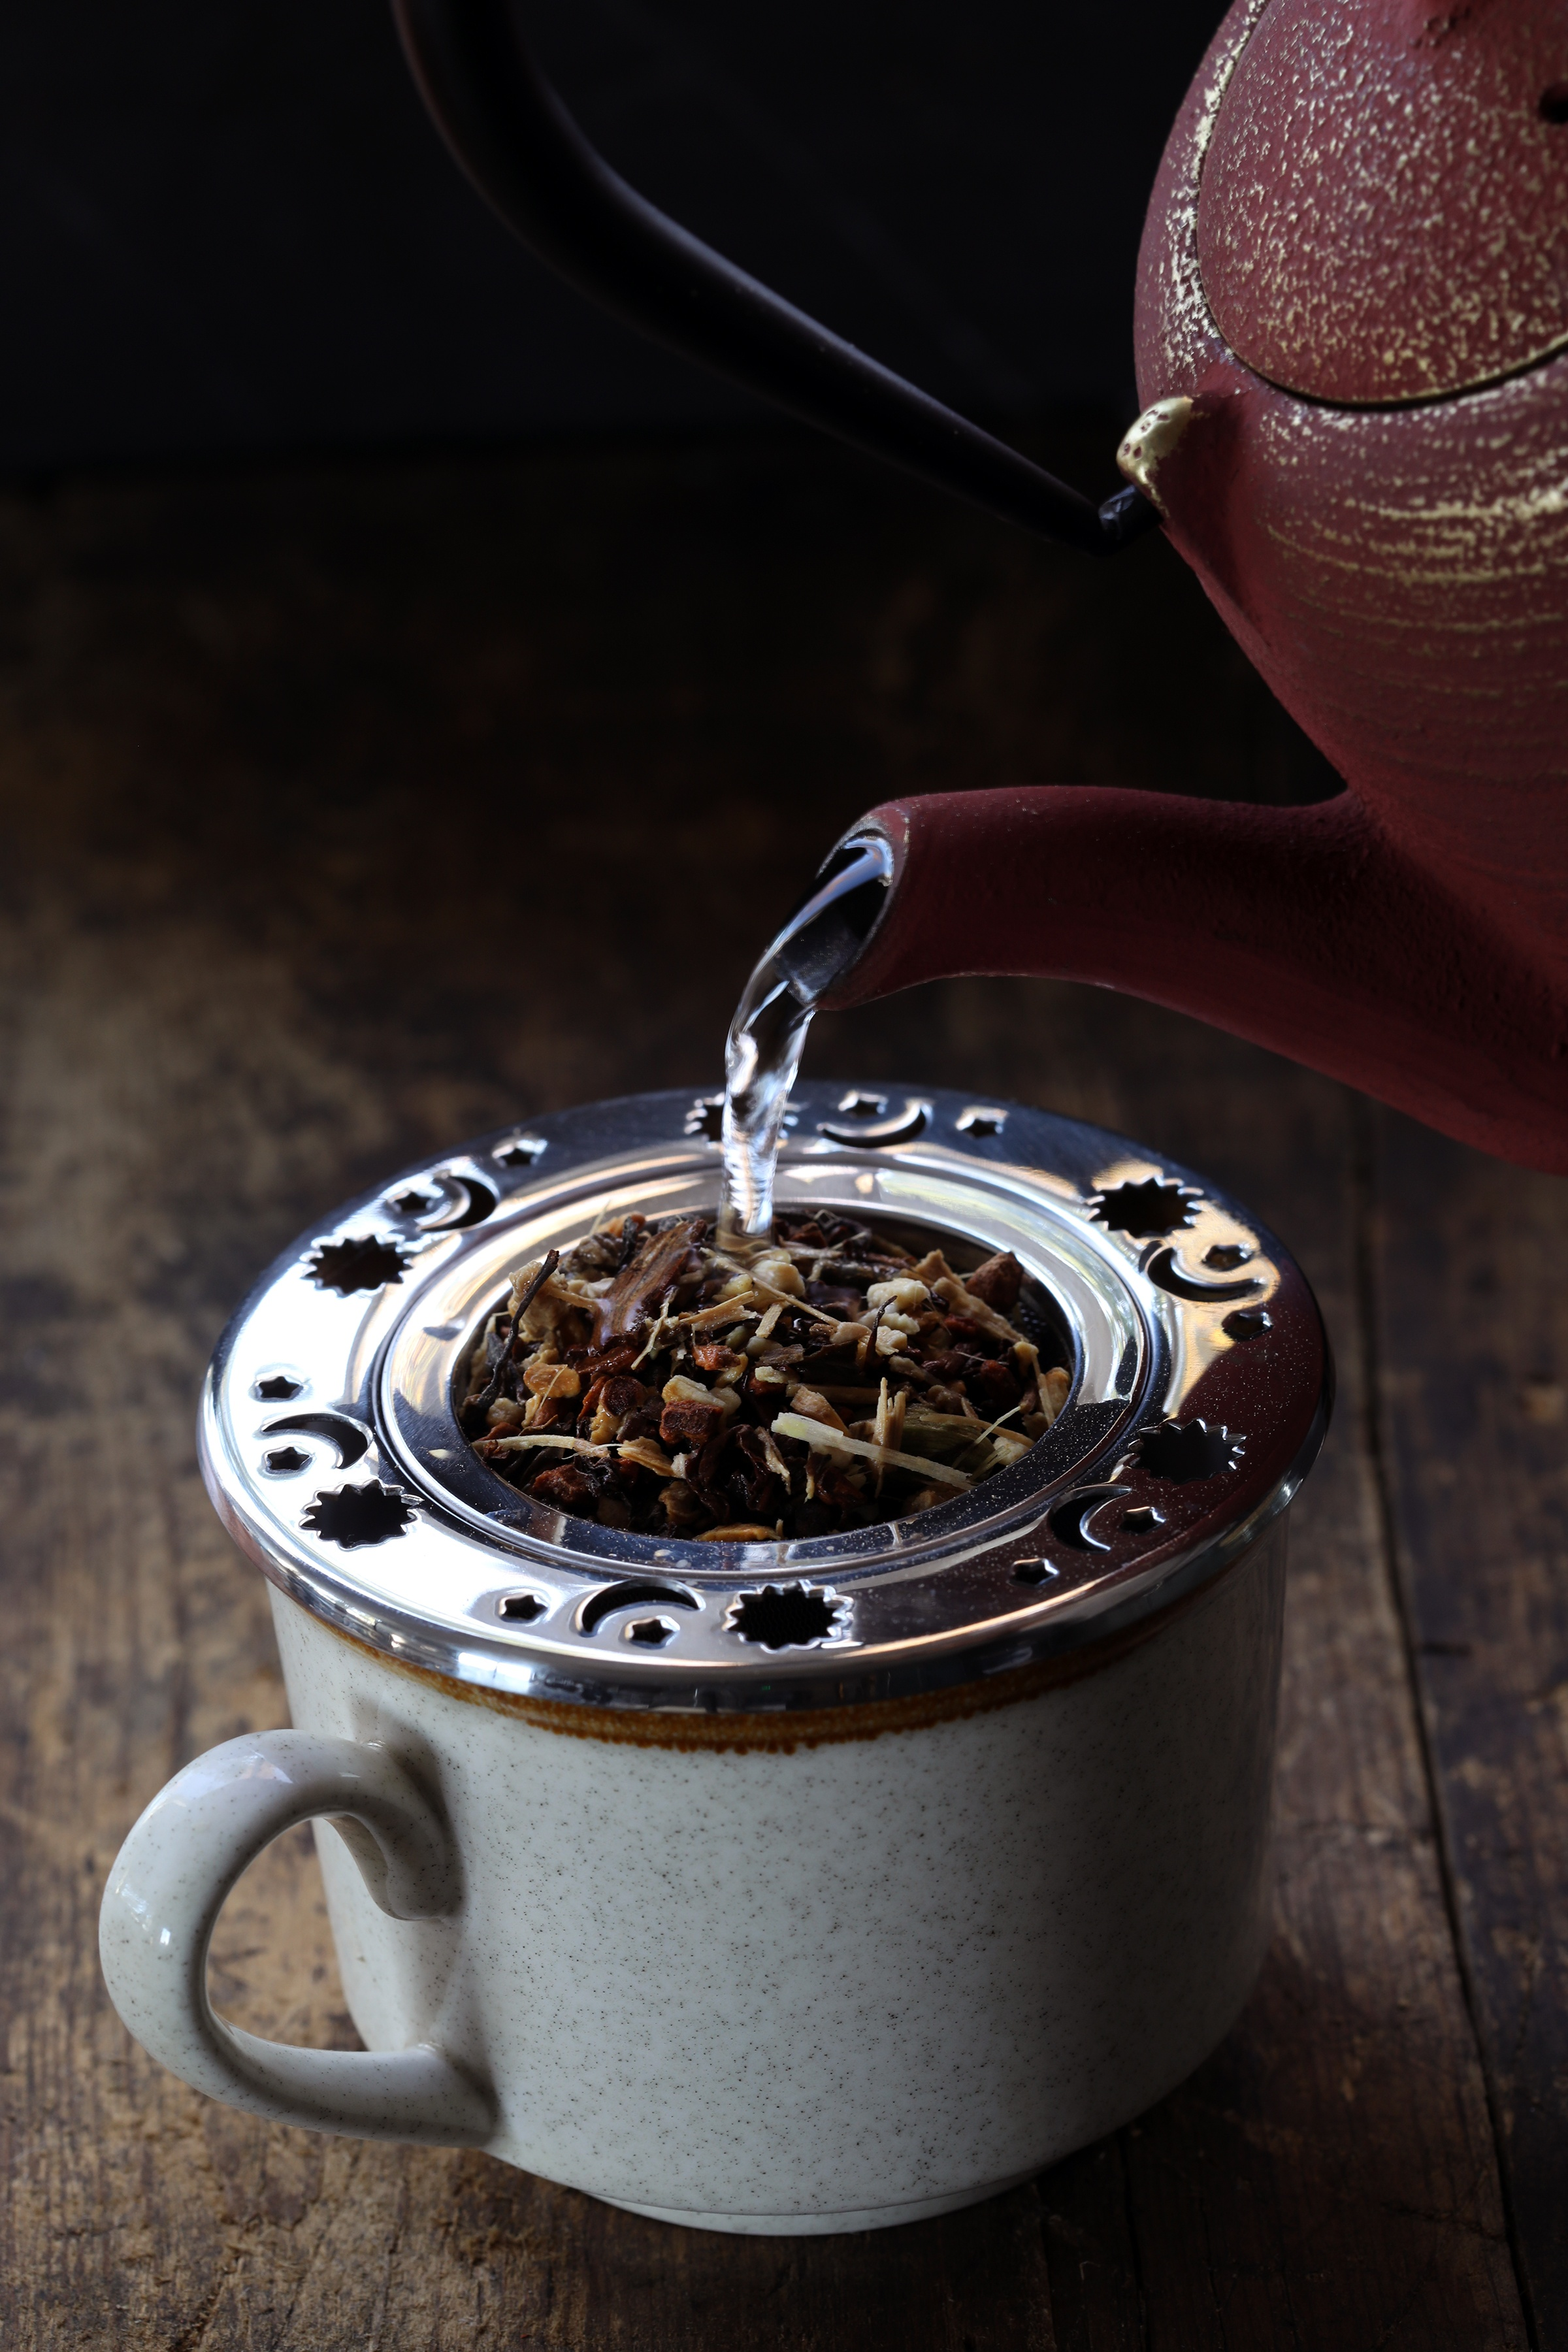 Tea kettle pouring hot water into mug holding celestial tea strainer filled with loose leaf tea